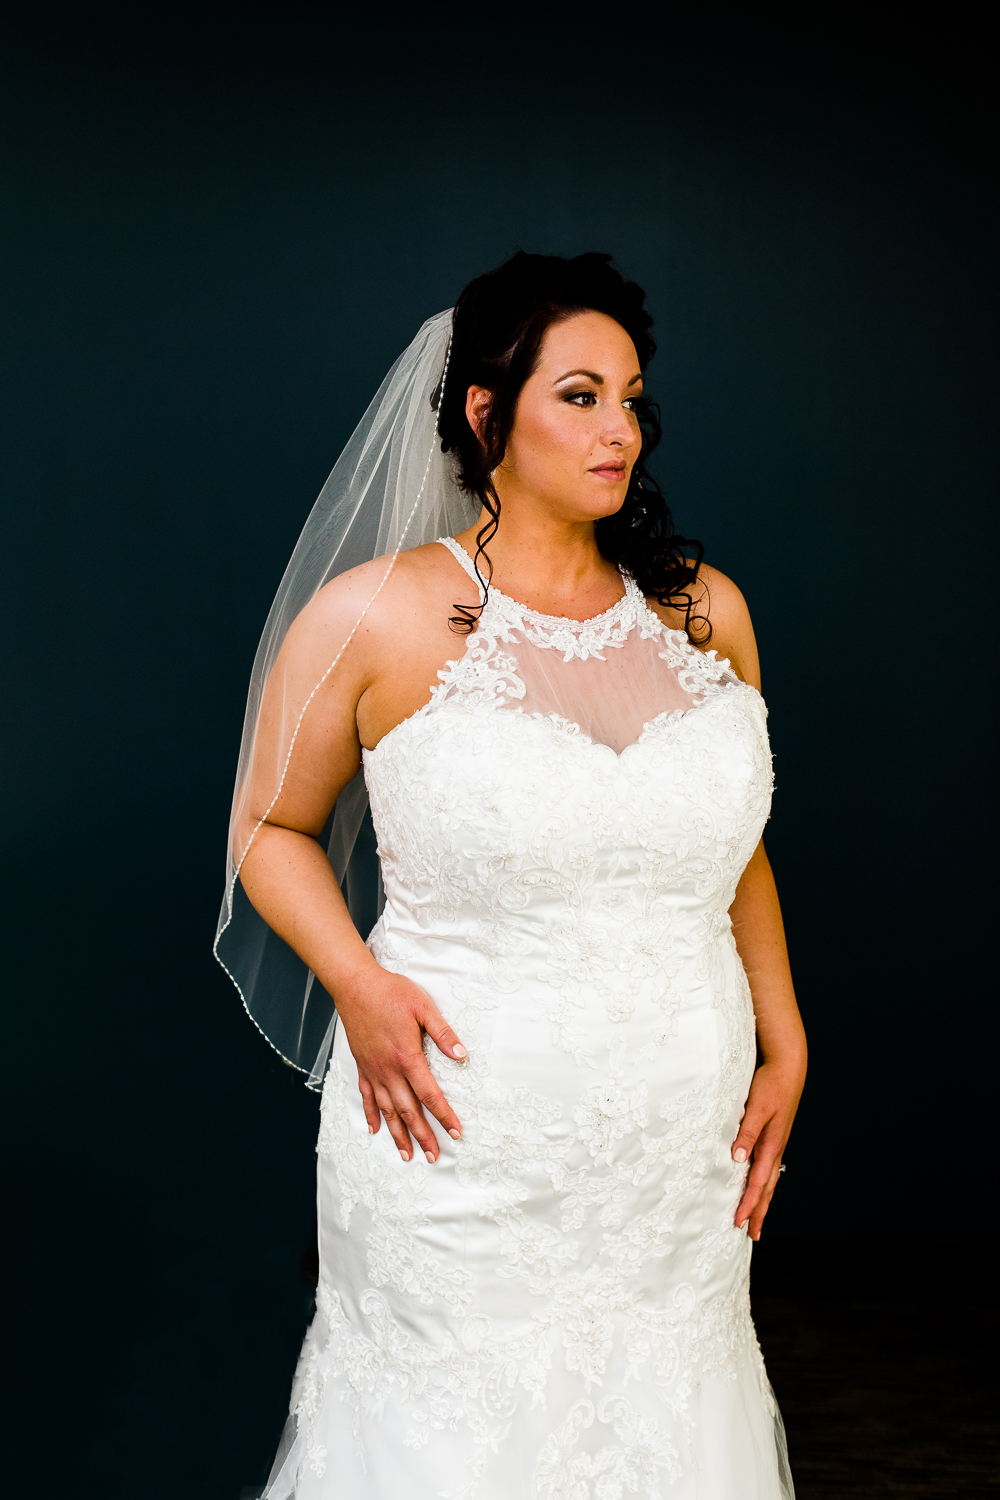 Bride in white halter gown with lacework. She is against a blue background looking off into the distance.